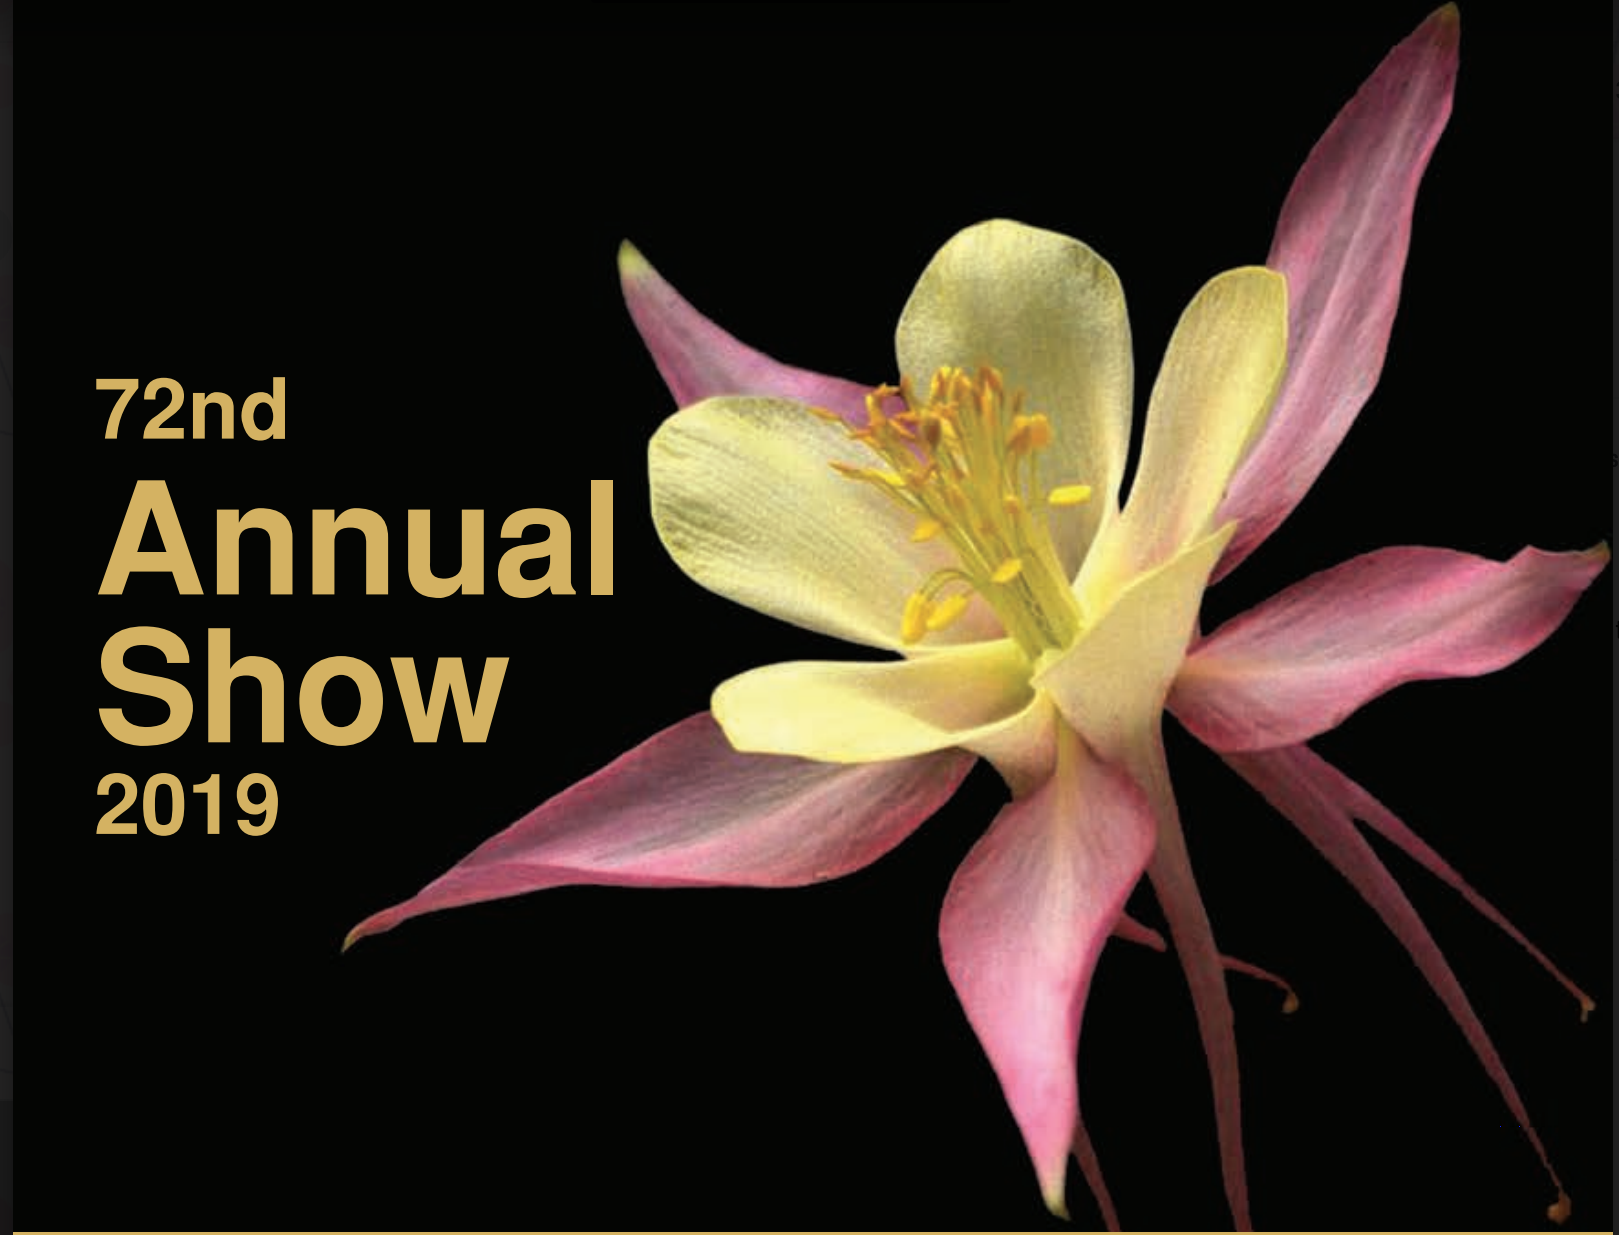 Image of annual show schedule